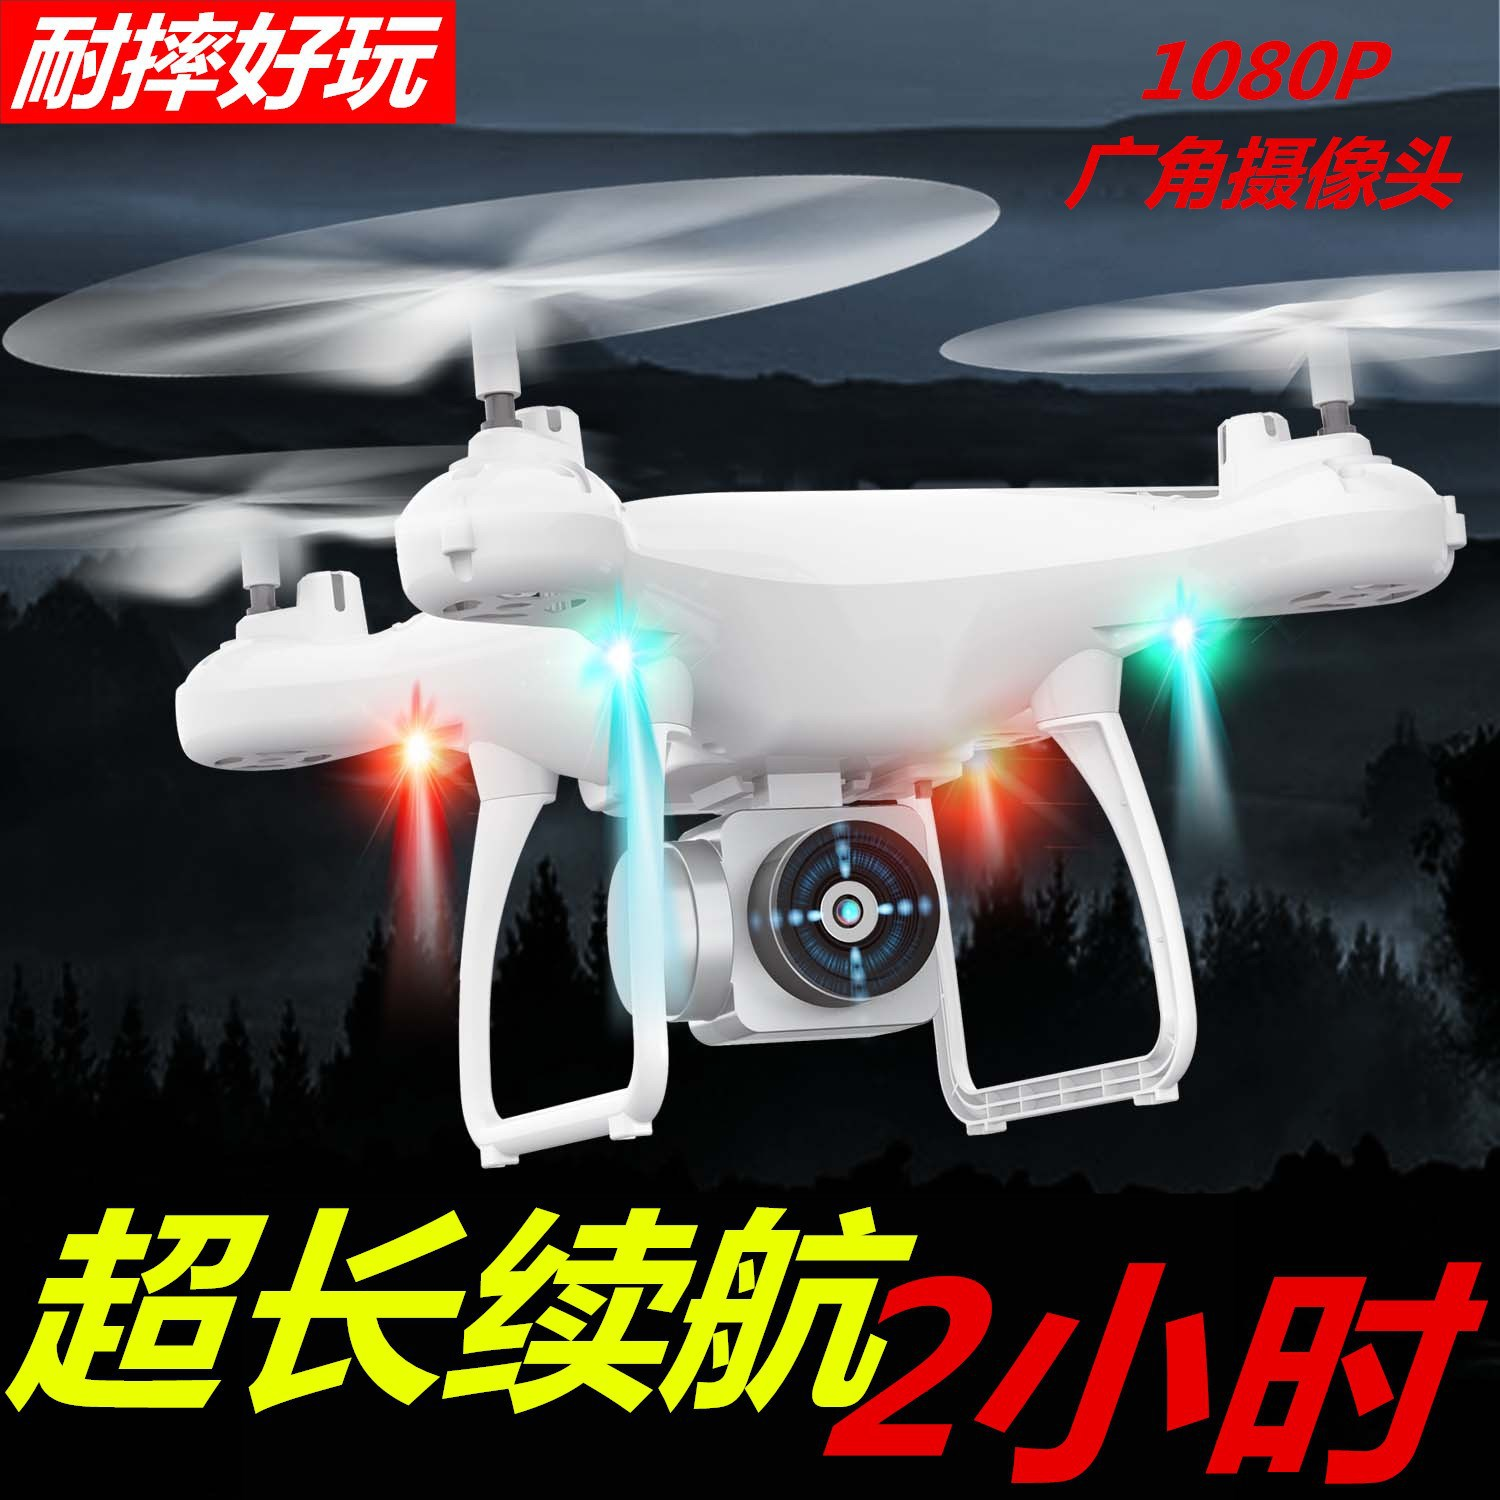 Unmanned Aerial Vehicle Aerial Photography High-definition Profession Ultra-long Life Battery Quadcopter Drop-resistant Charging